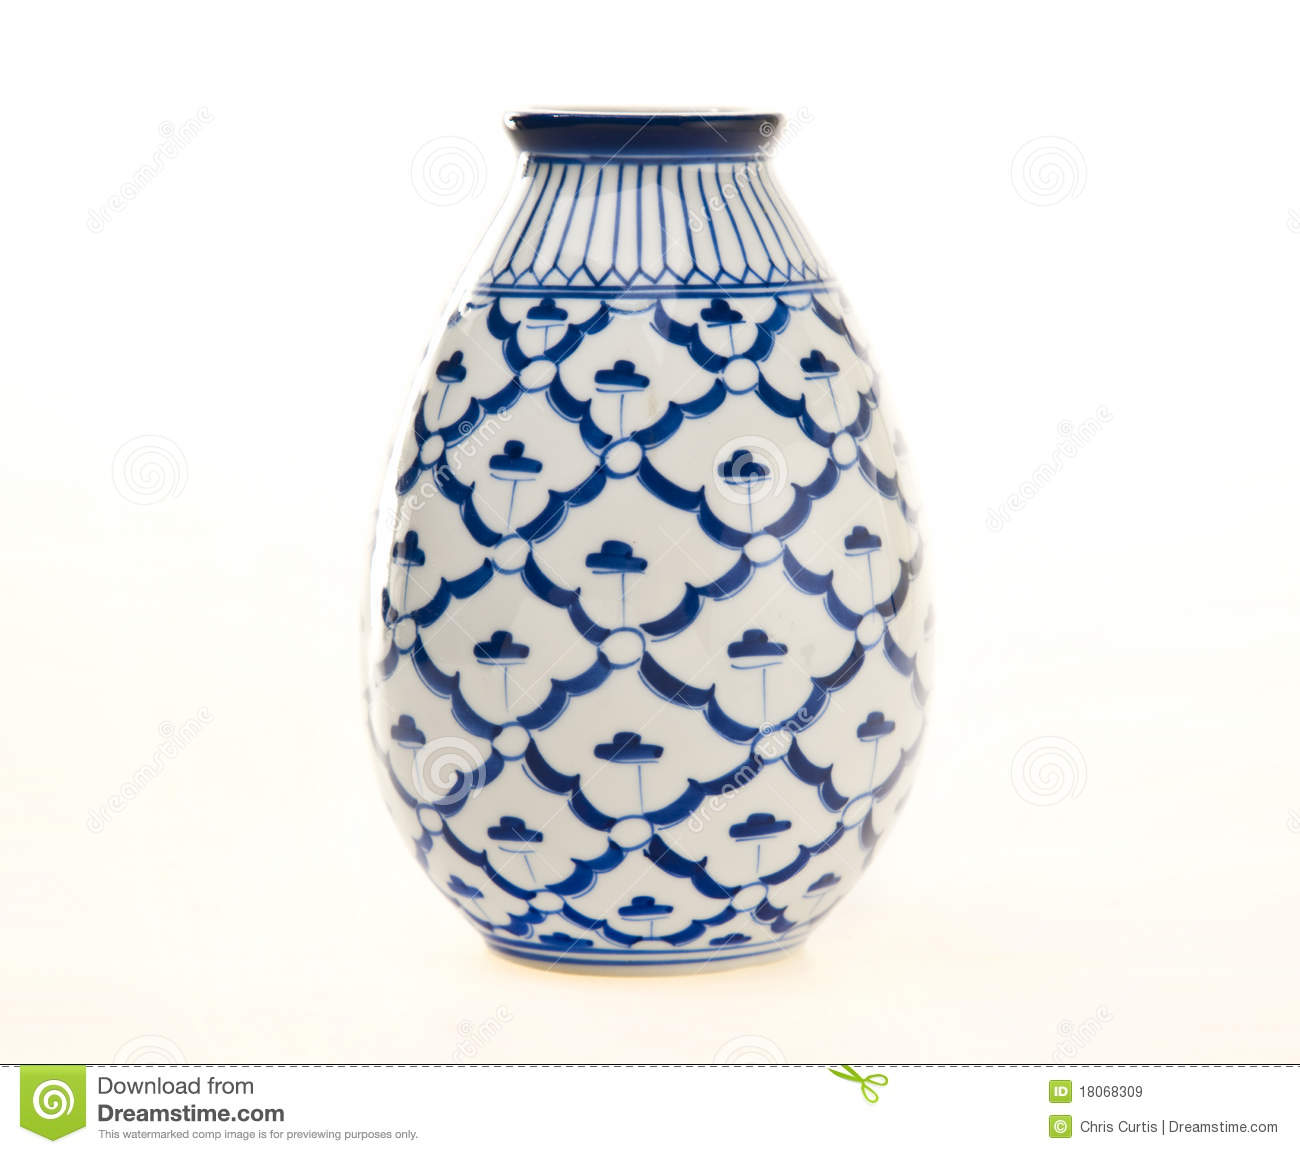 Blue and white pottery vase royalty free stock images for Decorating with blue and white pottery